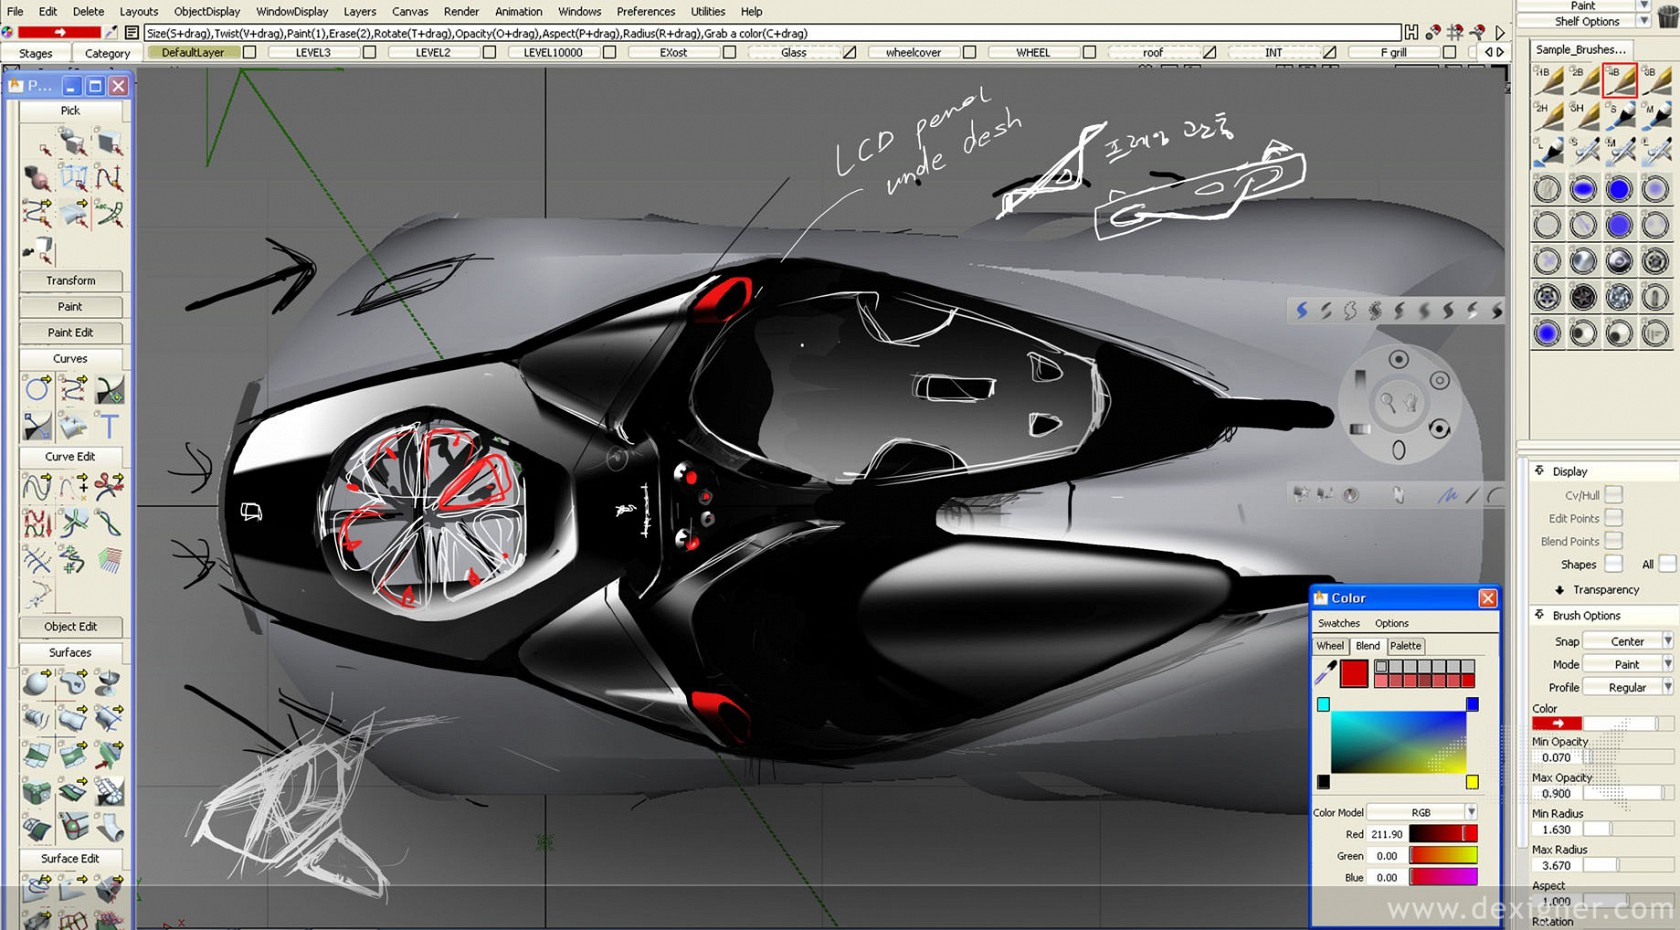 Buy Official Autodesk Alias Surface Software